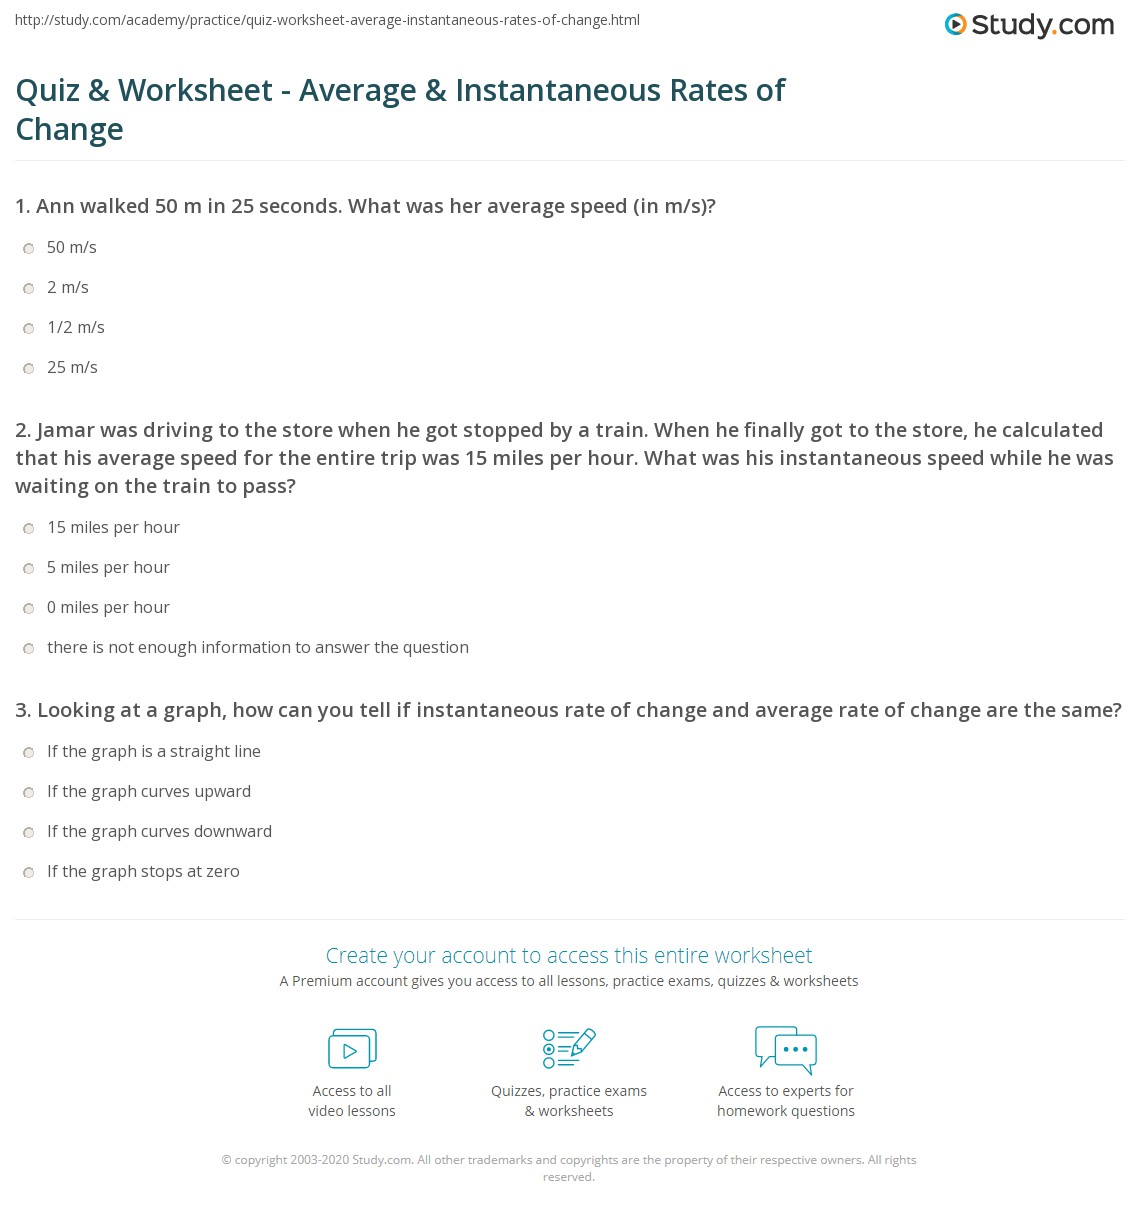 worksheet Instantaneous Rate Of Change Worksheet quiz worksheet average instantaneous rates of change study com 1 jamar was driving to the store when he got stopped by a train finally calculated that his avera